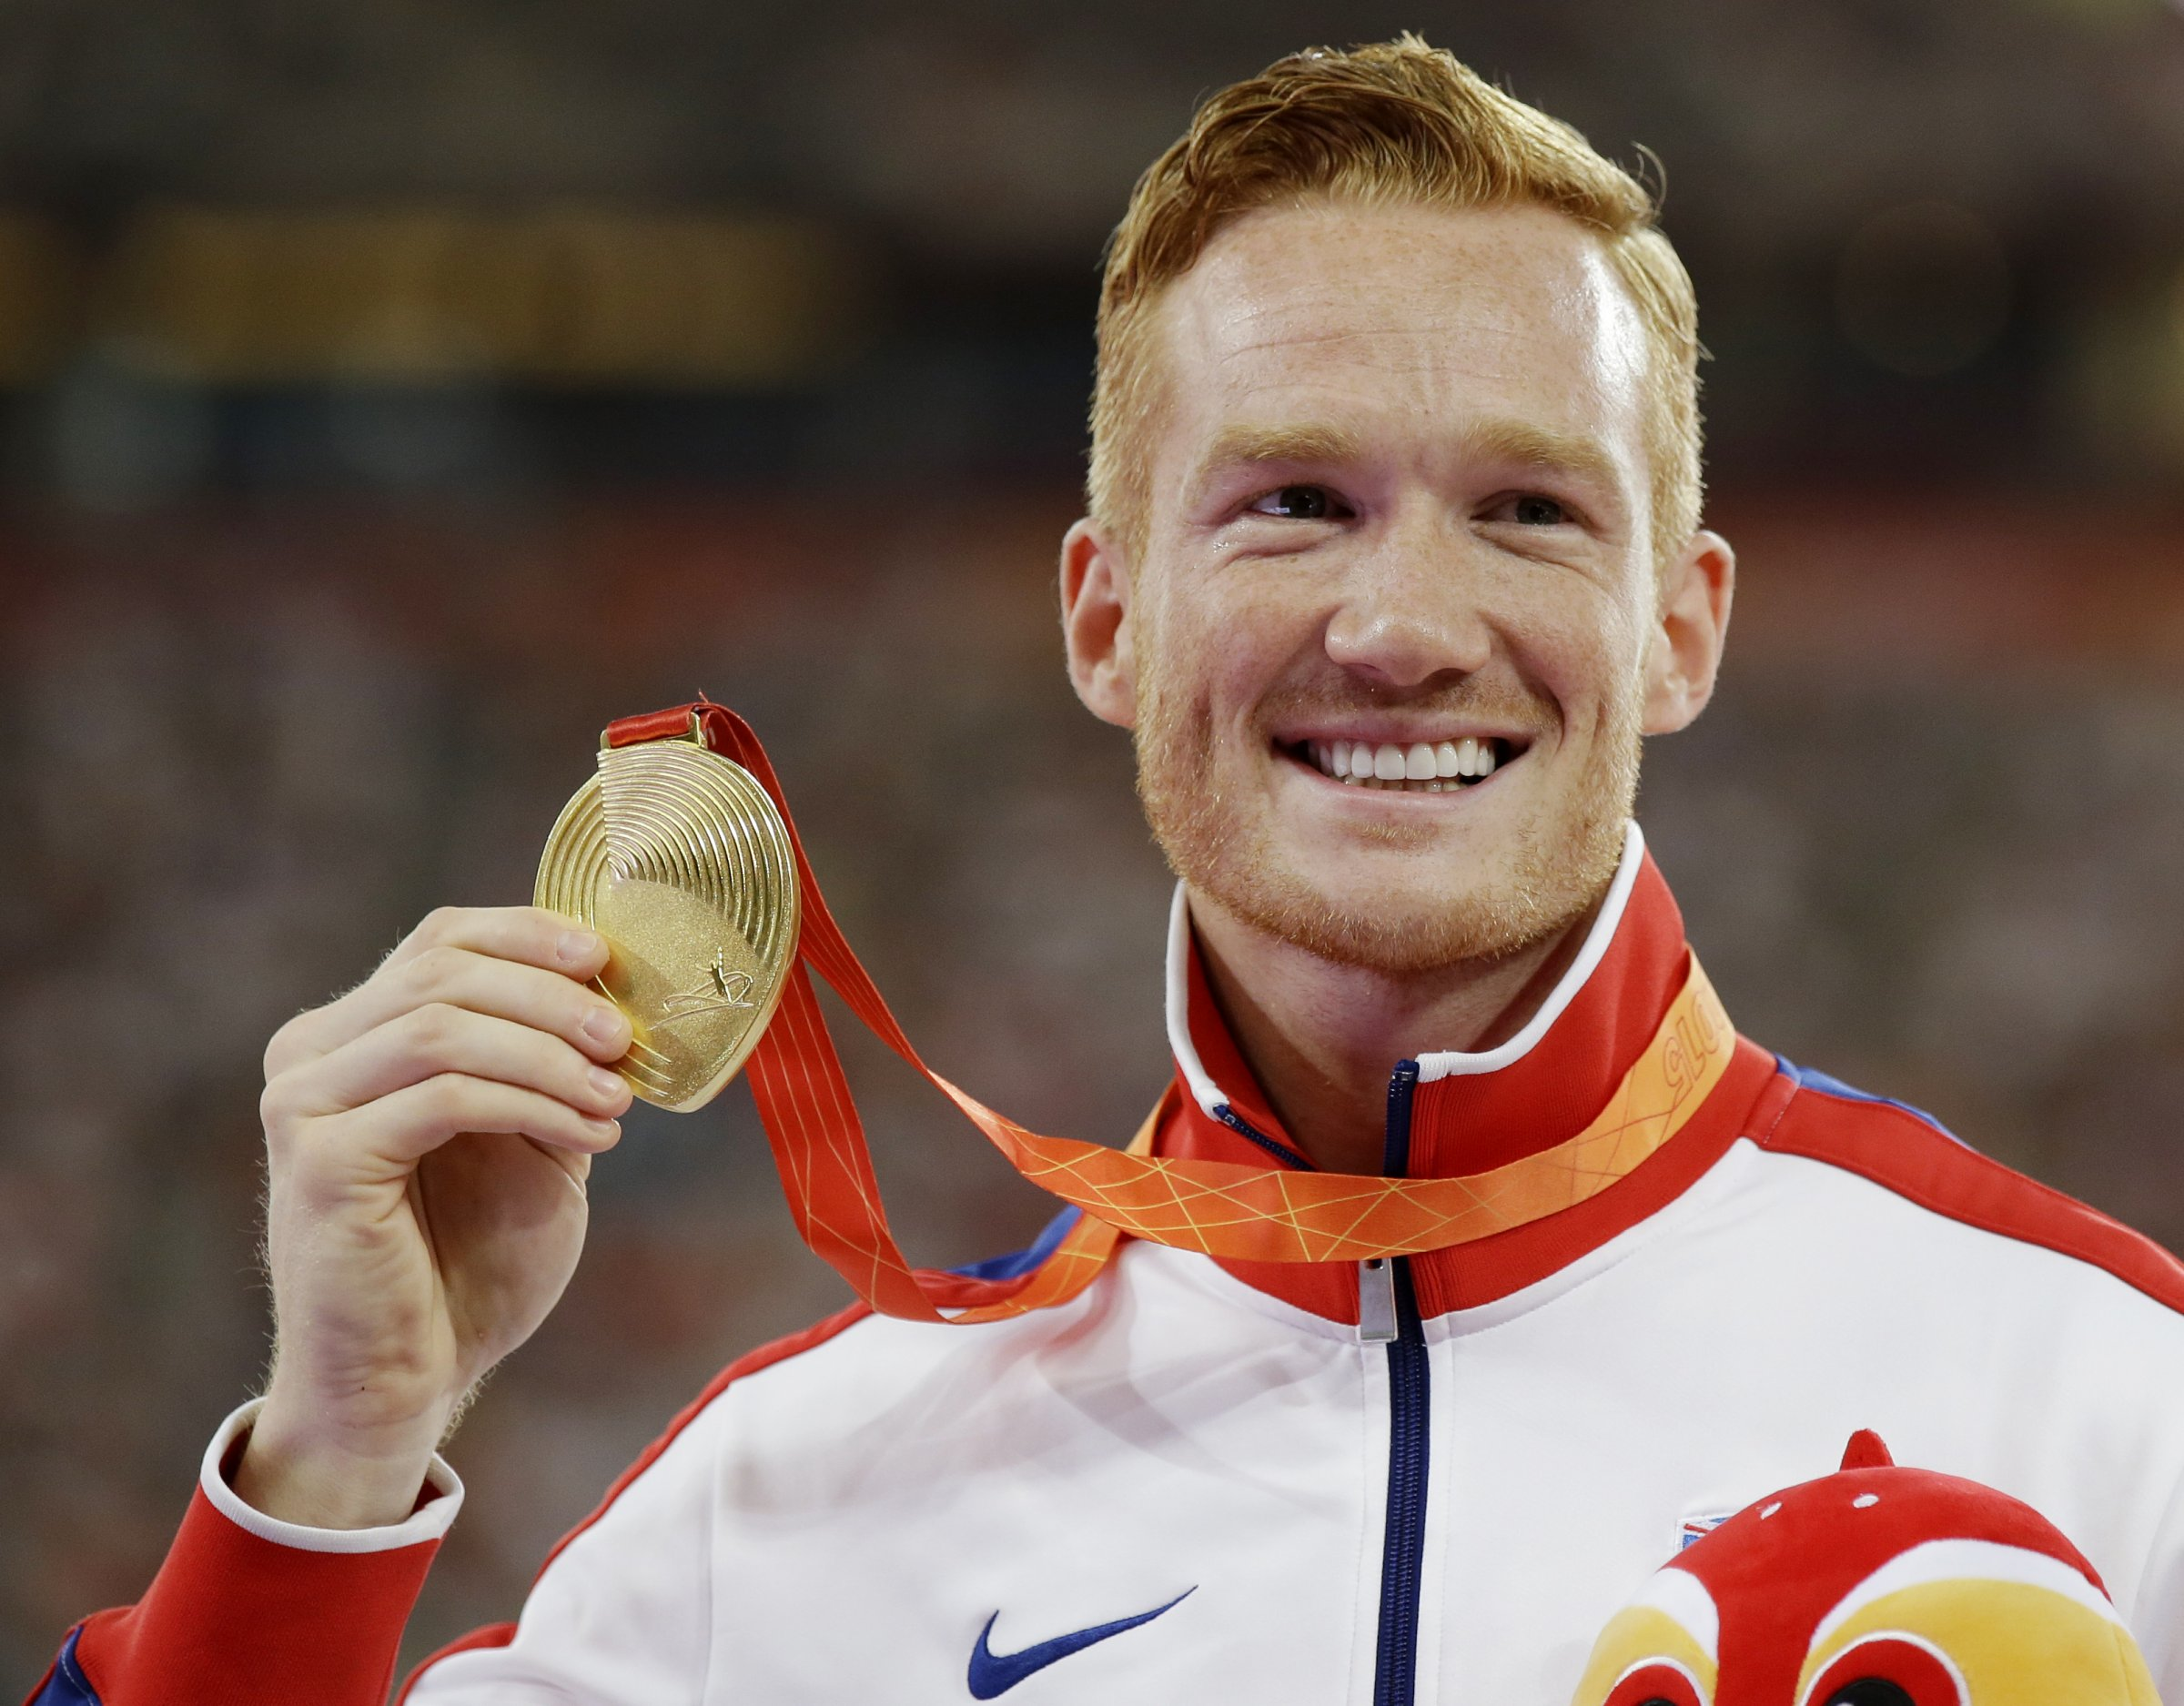 2400x1875 - Greg Rutherford Wallpapers 19